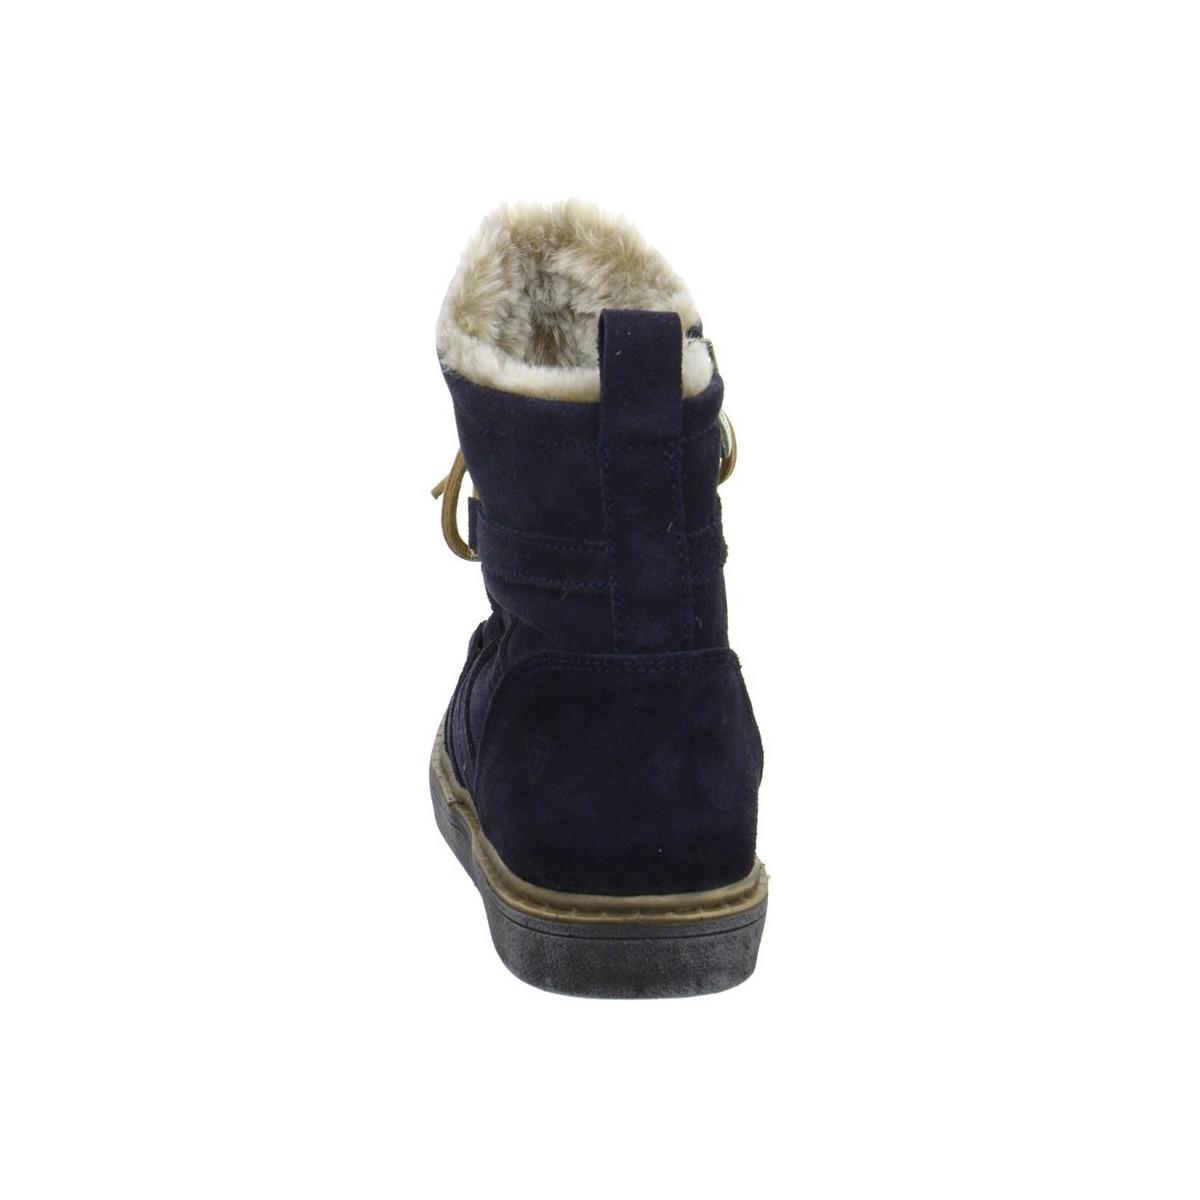 Tamaris Sonia women's Snow boots in Free Shipping Looking For Buy Cheap With Paypal 2018 Professional Cheap Price Lowest Price For Sale ke1RQ3O0Z9